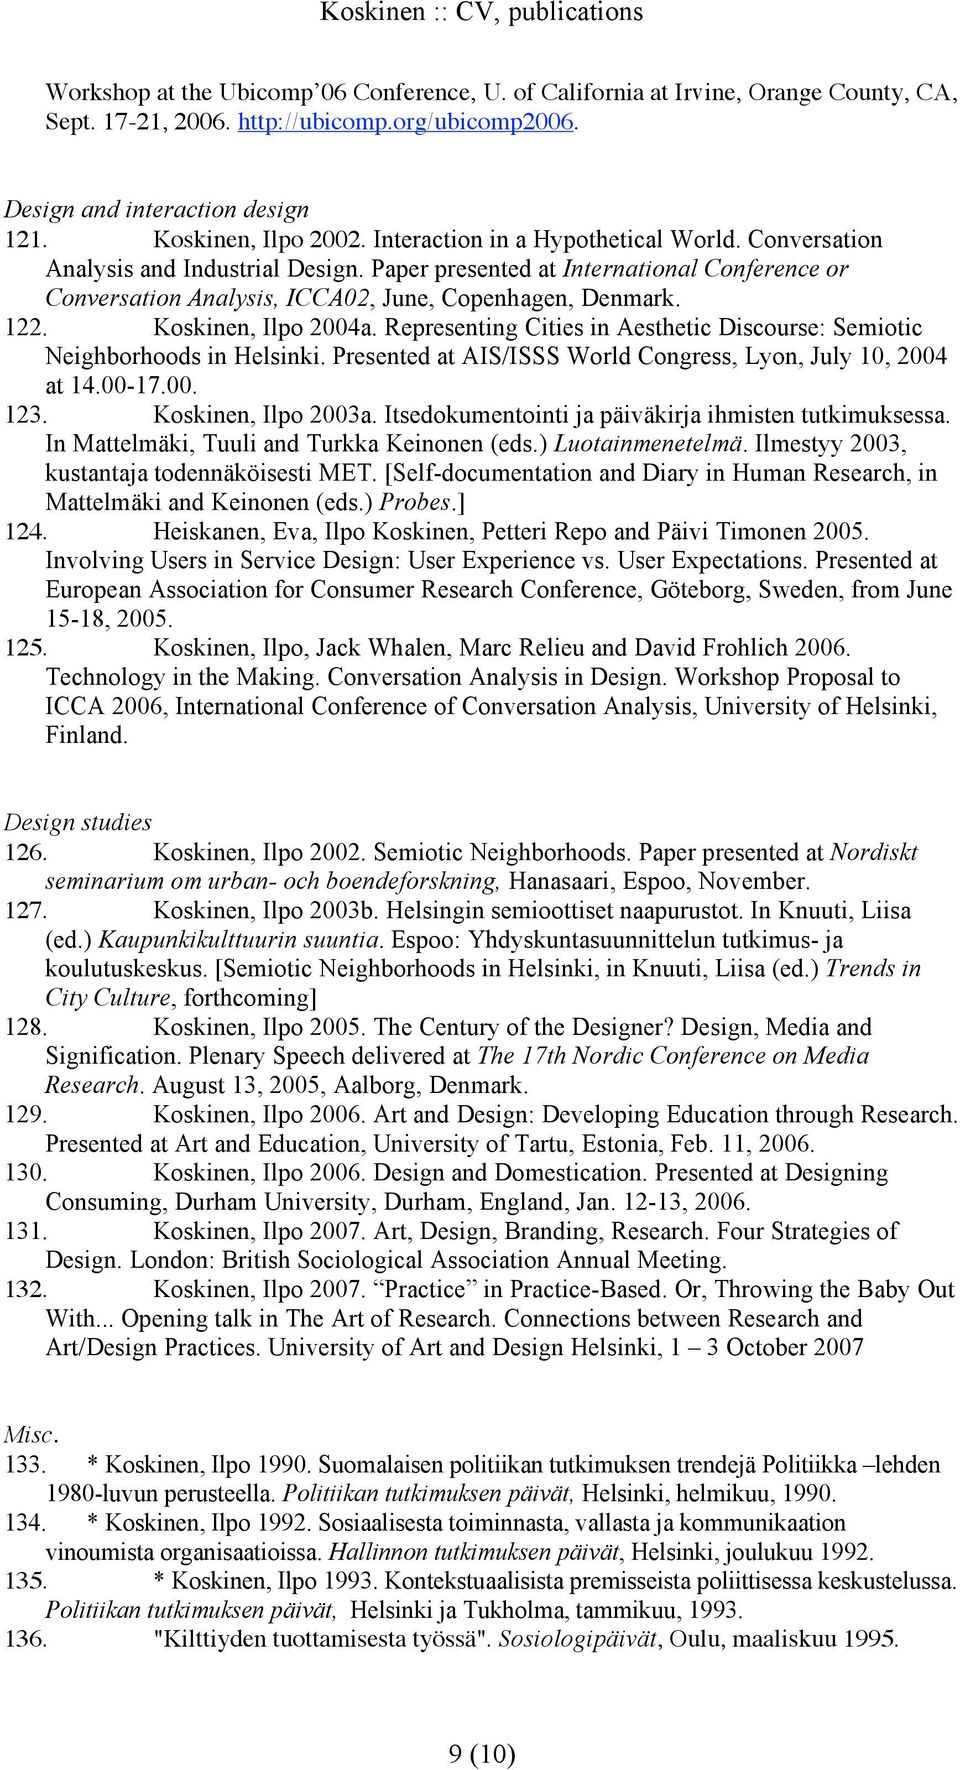 Koskinen, Ilpo 2004a. Representing Cities in Aesthetic Discourse: Semiotic Neighborhoods in Helsinki. Presented at AIS/ISSS World Congress, Lyon, July 10, 2004 at 14.00-17.00. 123.